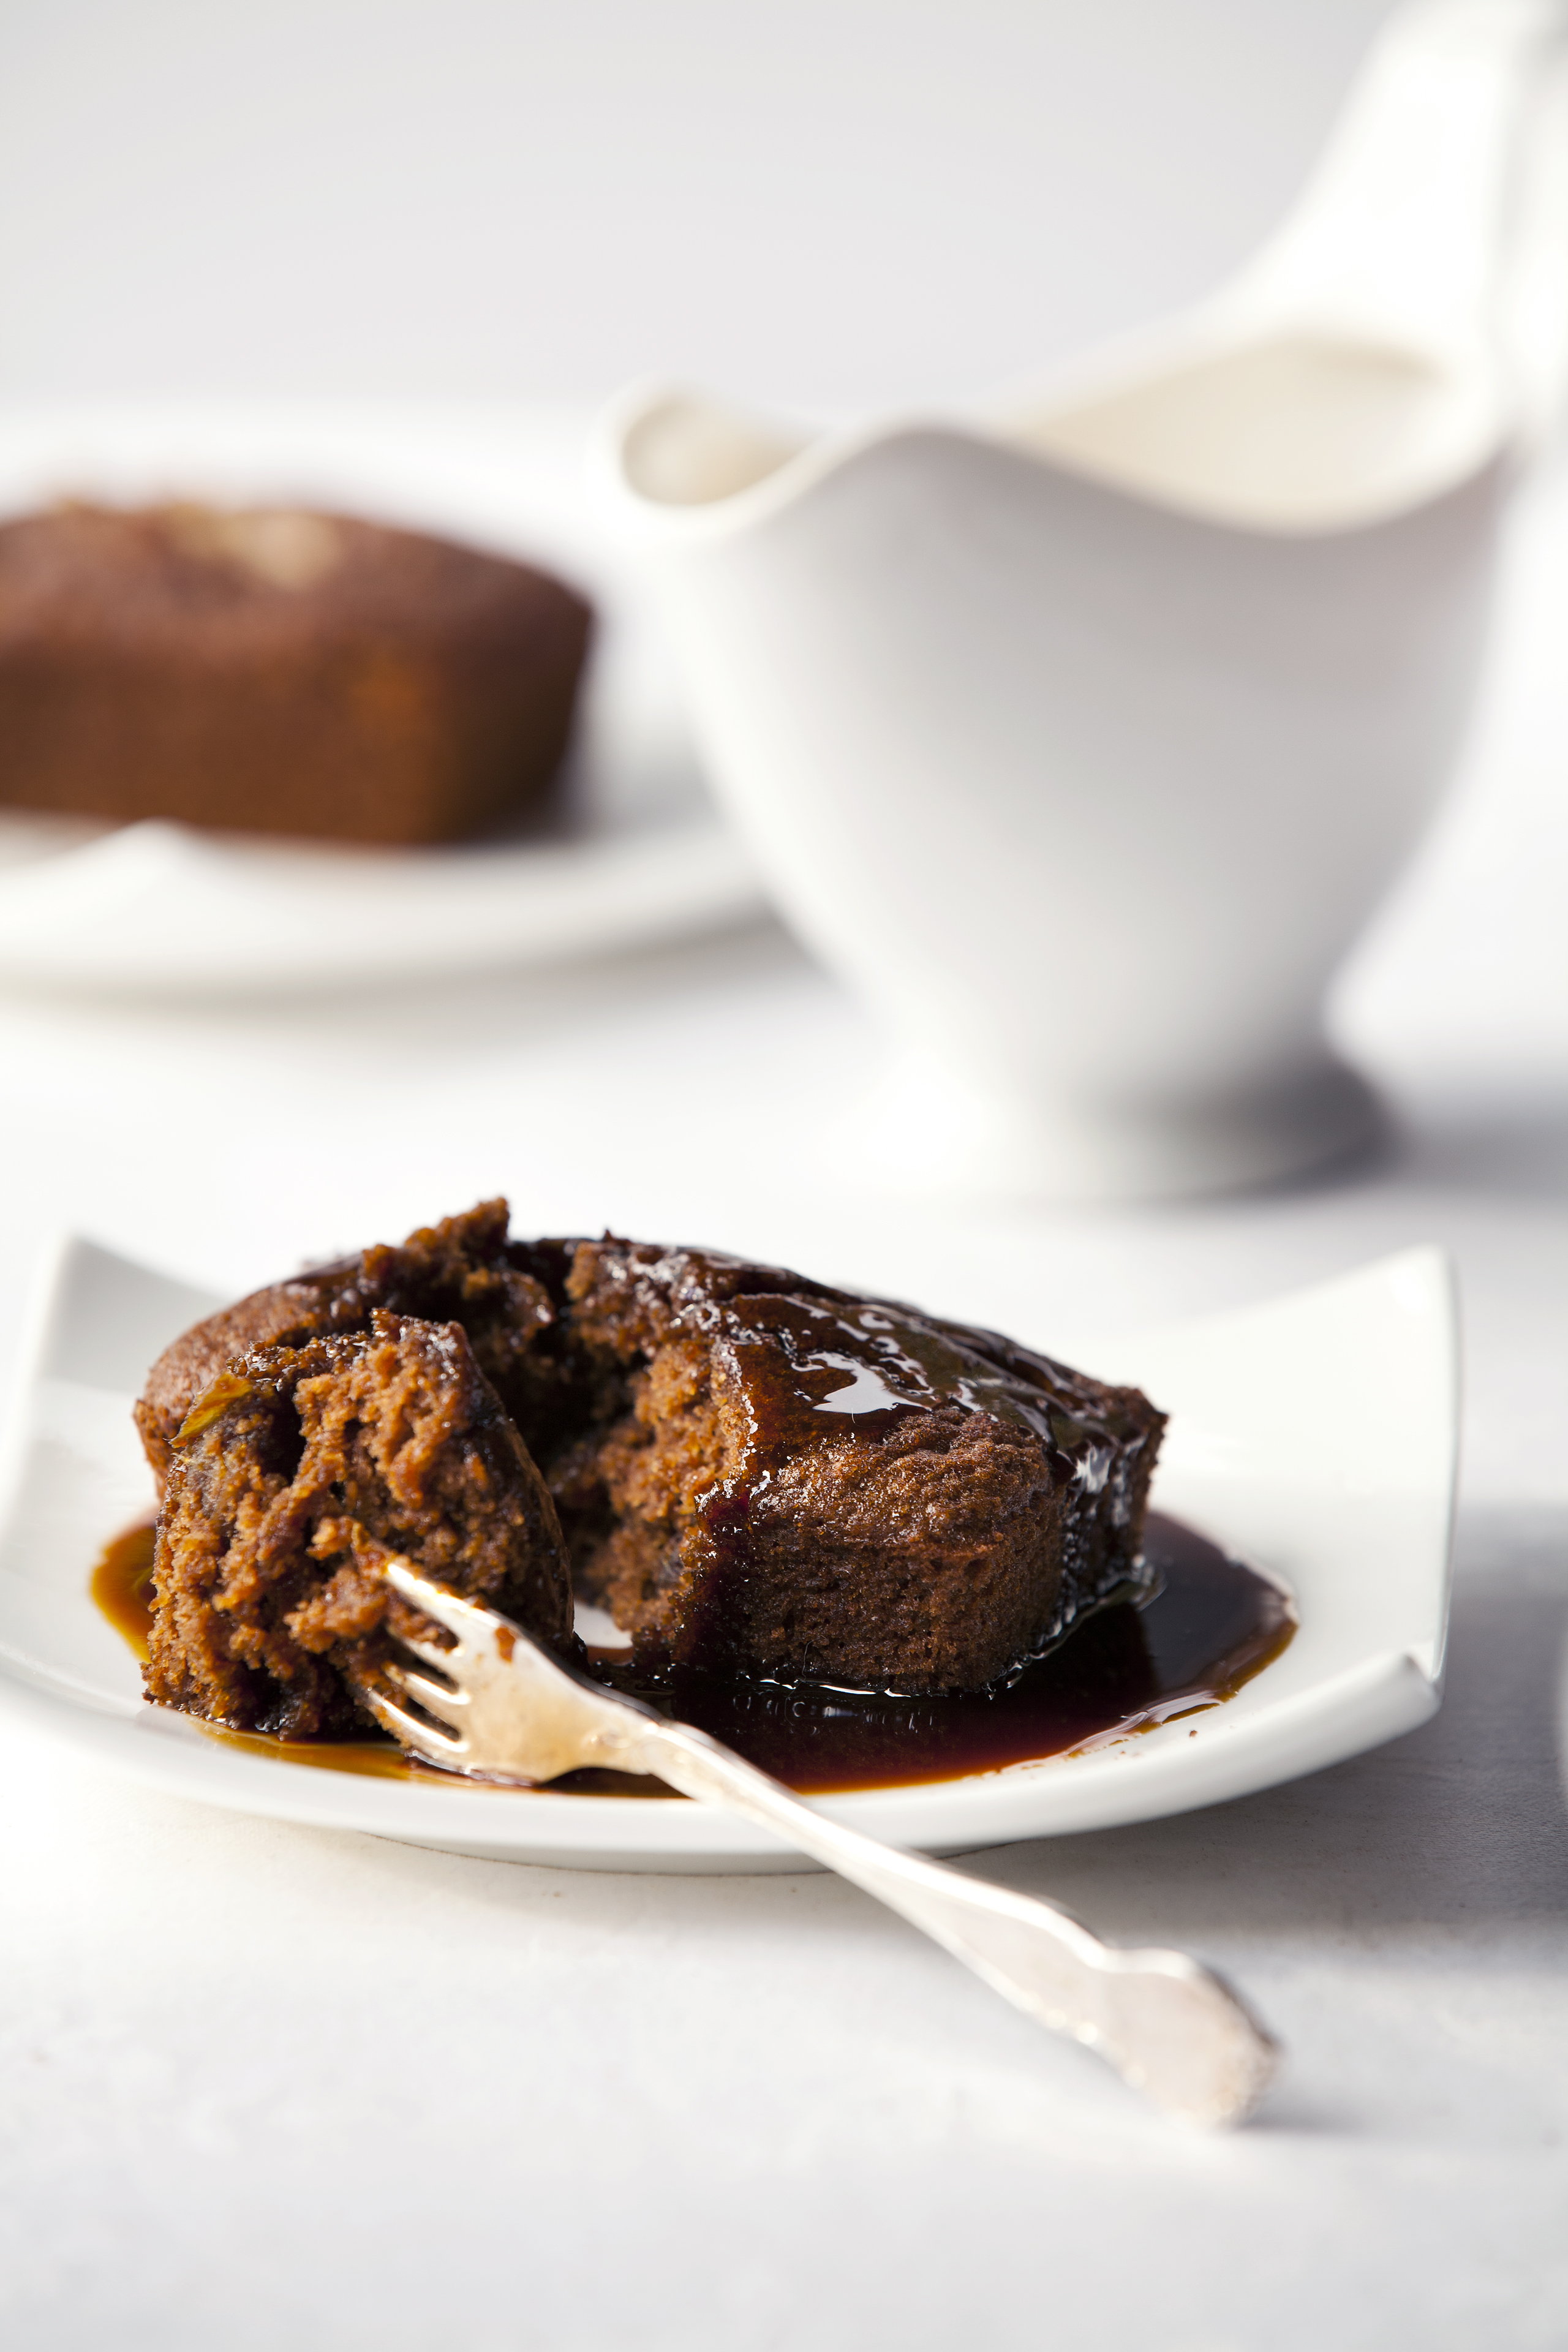 Ginger Date Puddings with Salted Caramel Sauce